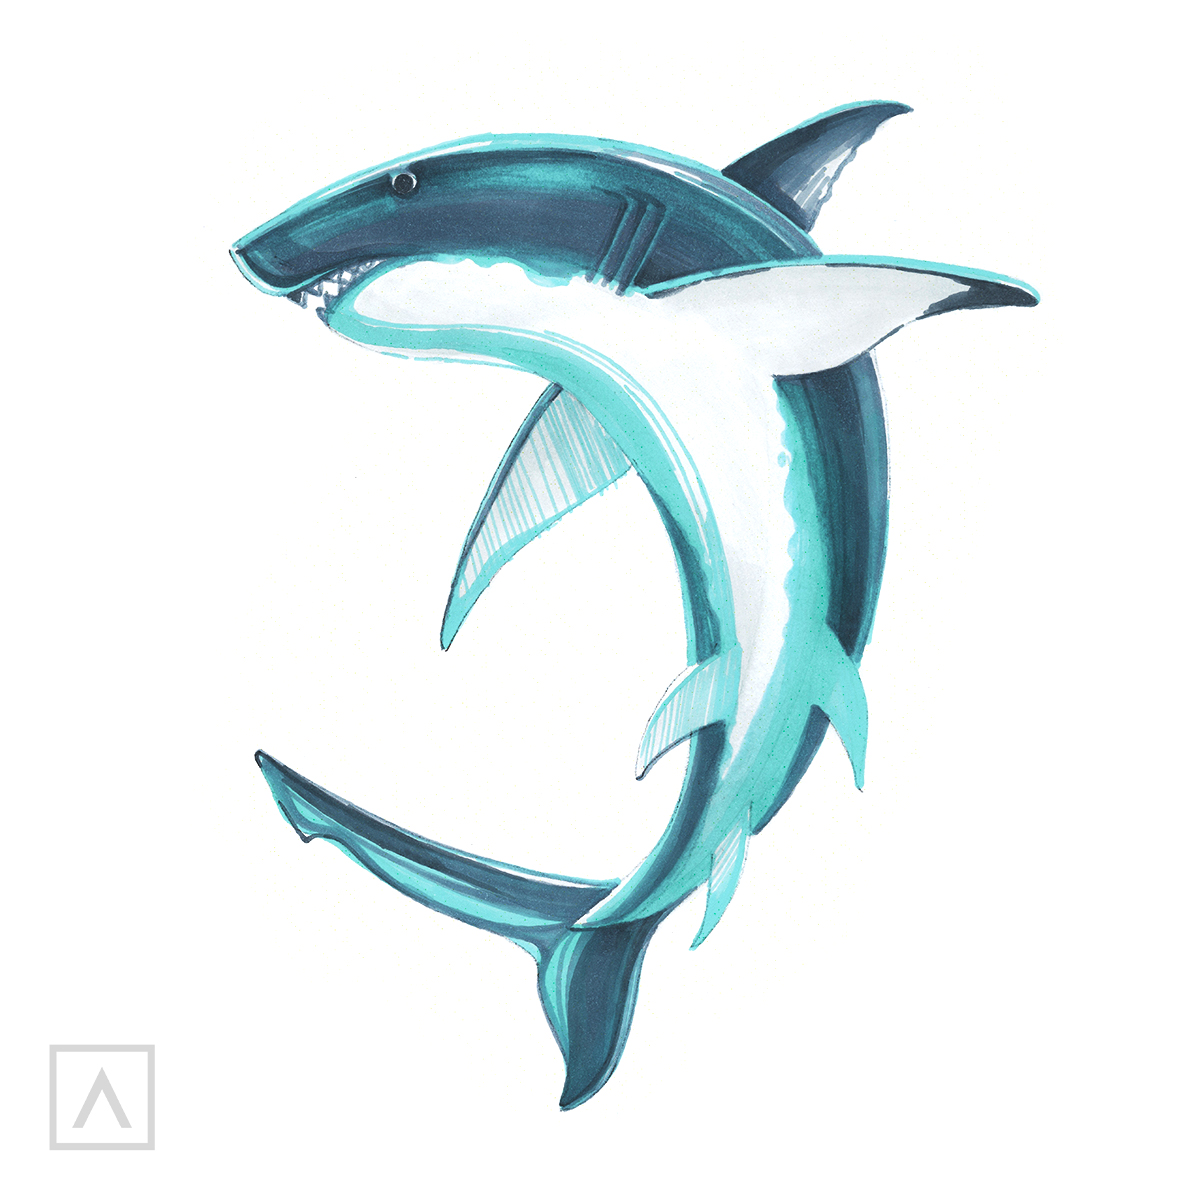 How to Draw a Shark - Step 6